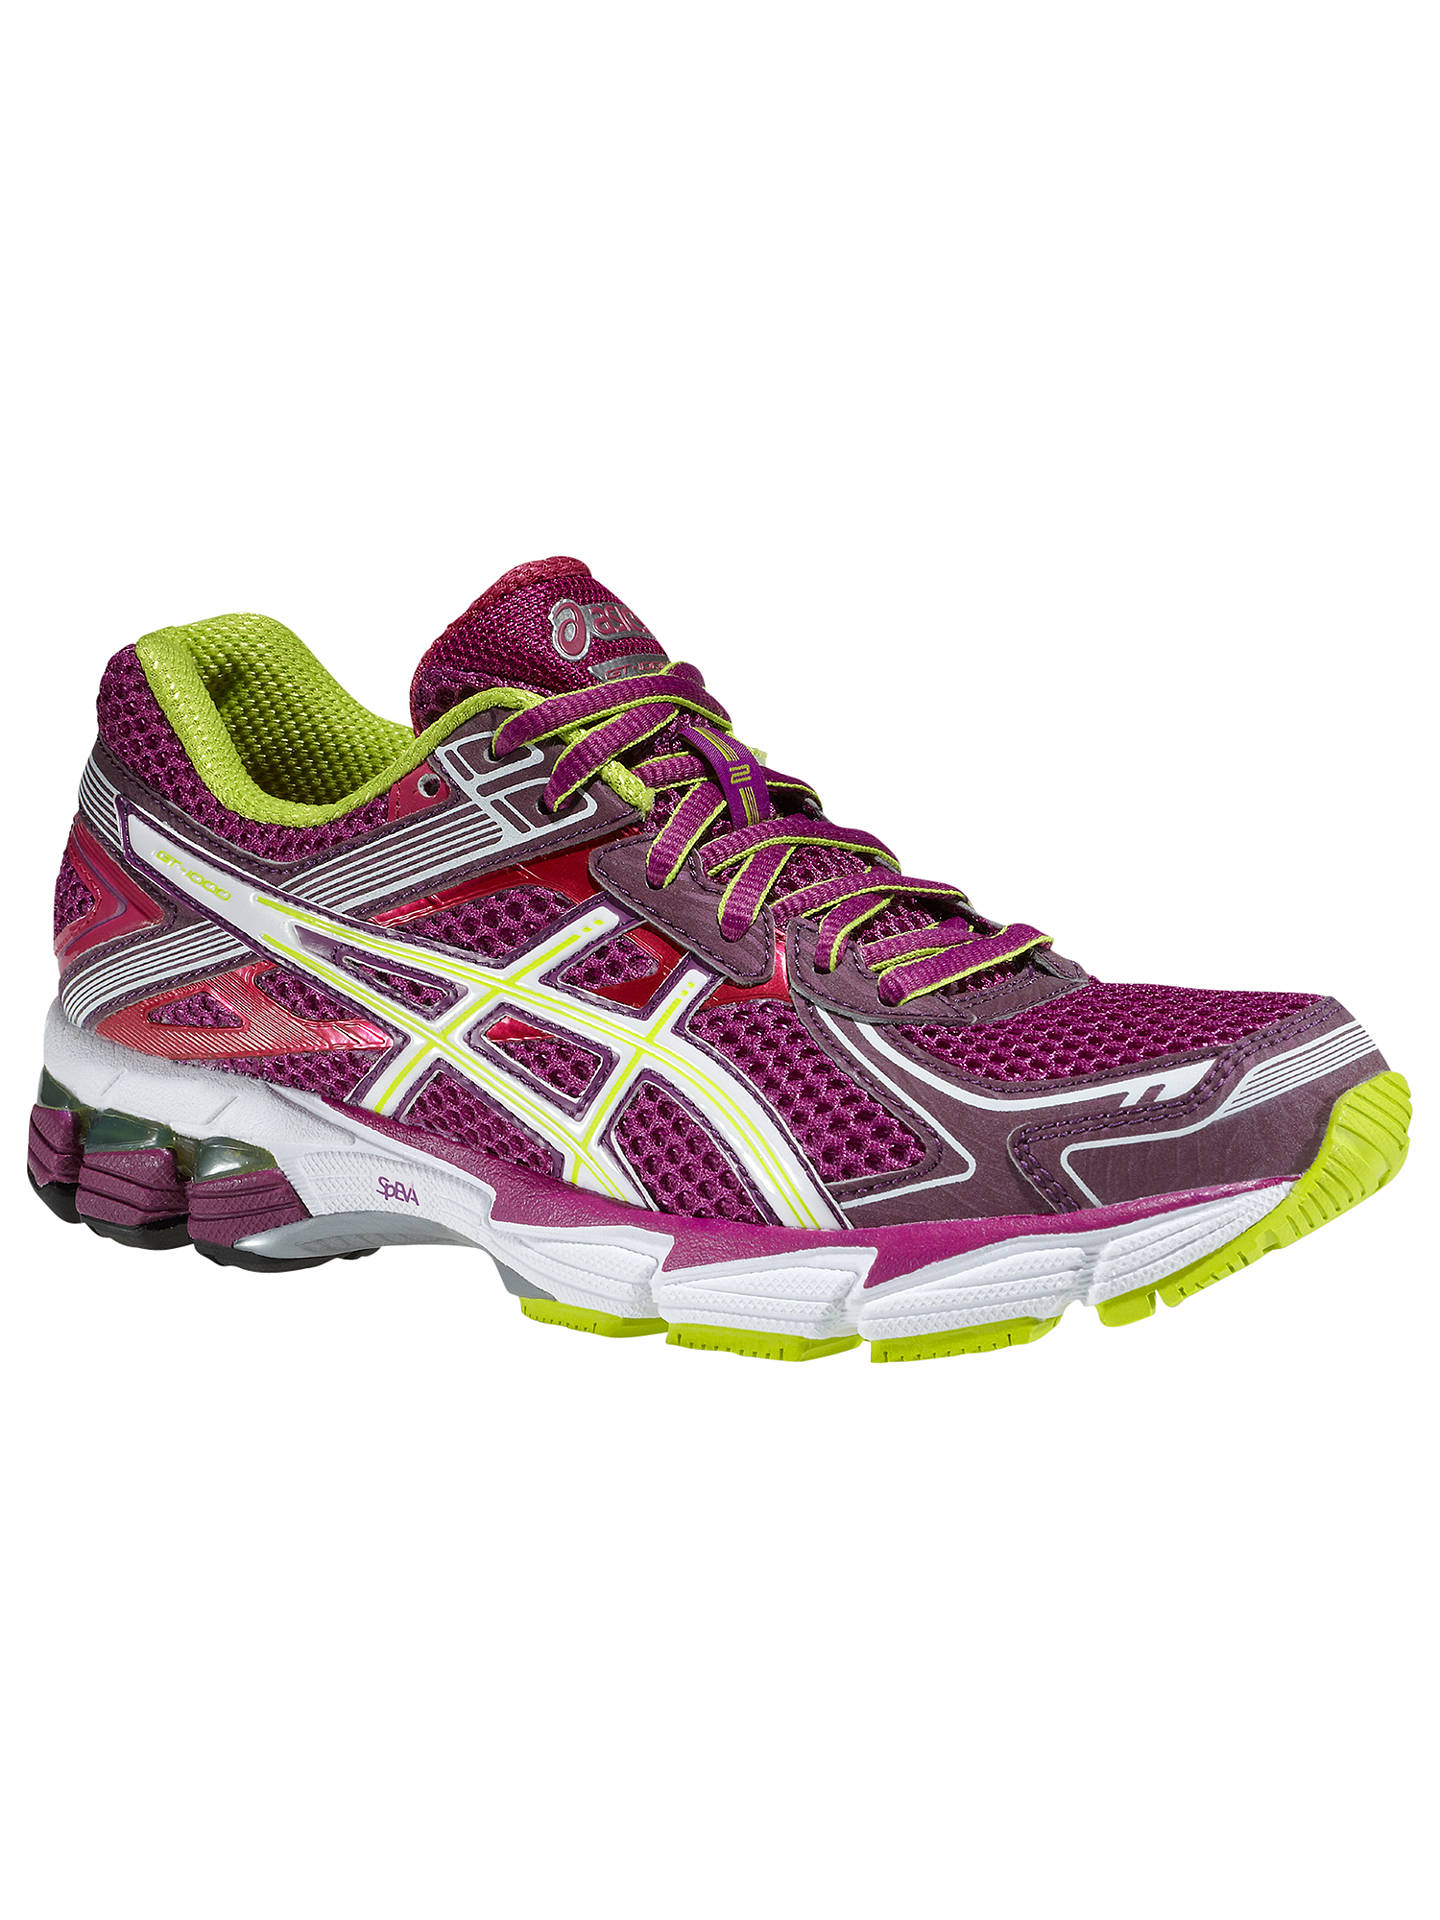 asics women trainers purple